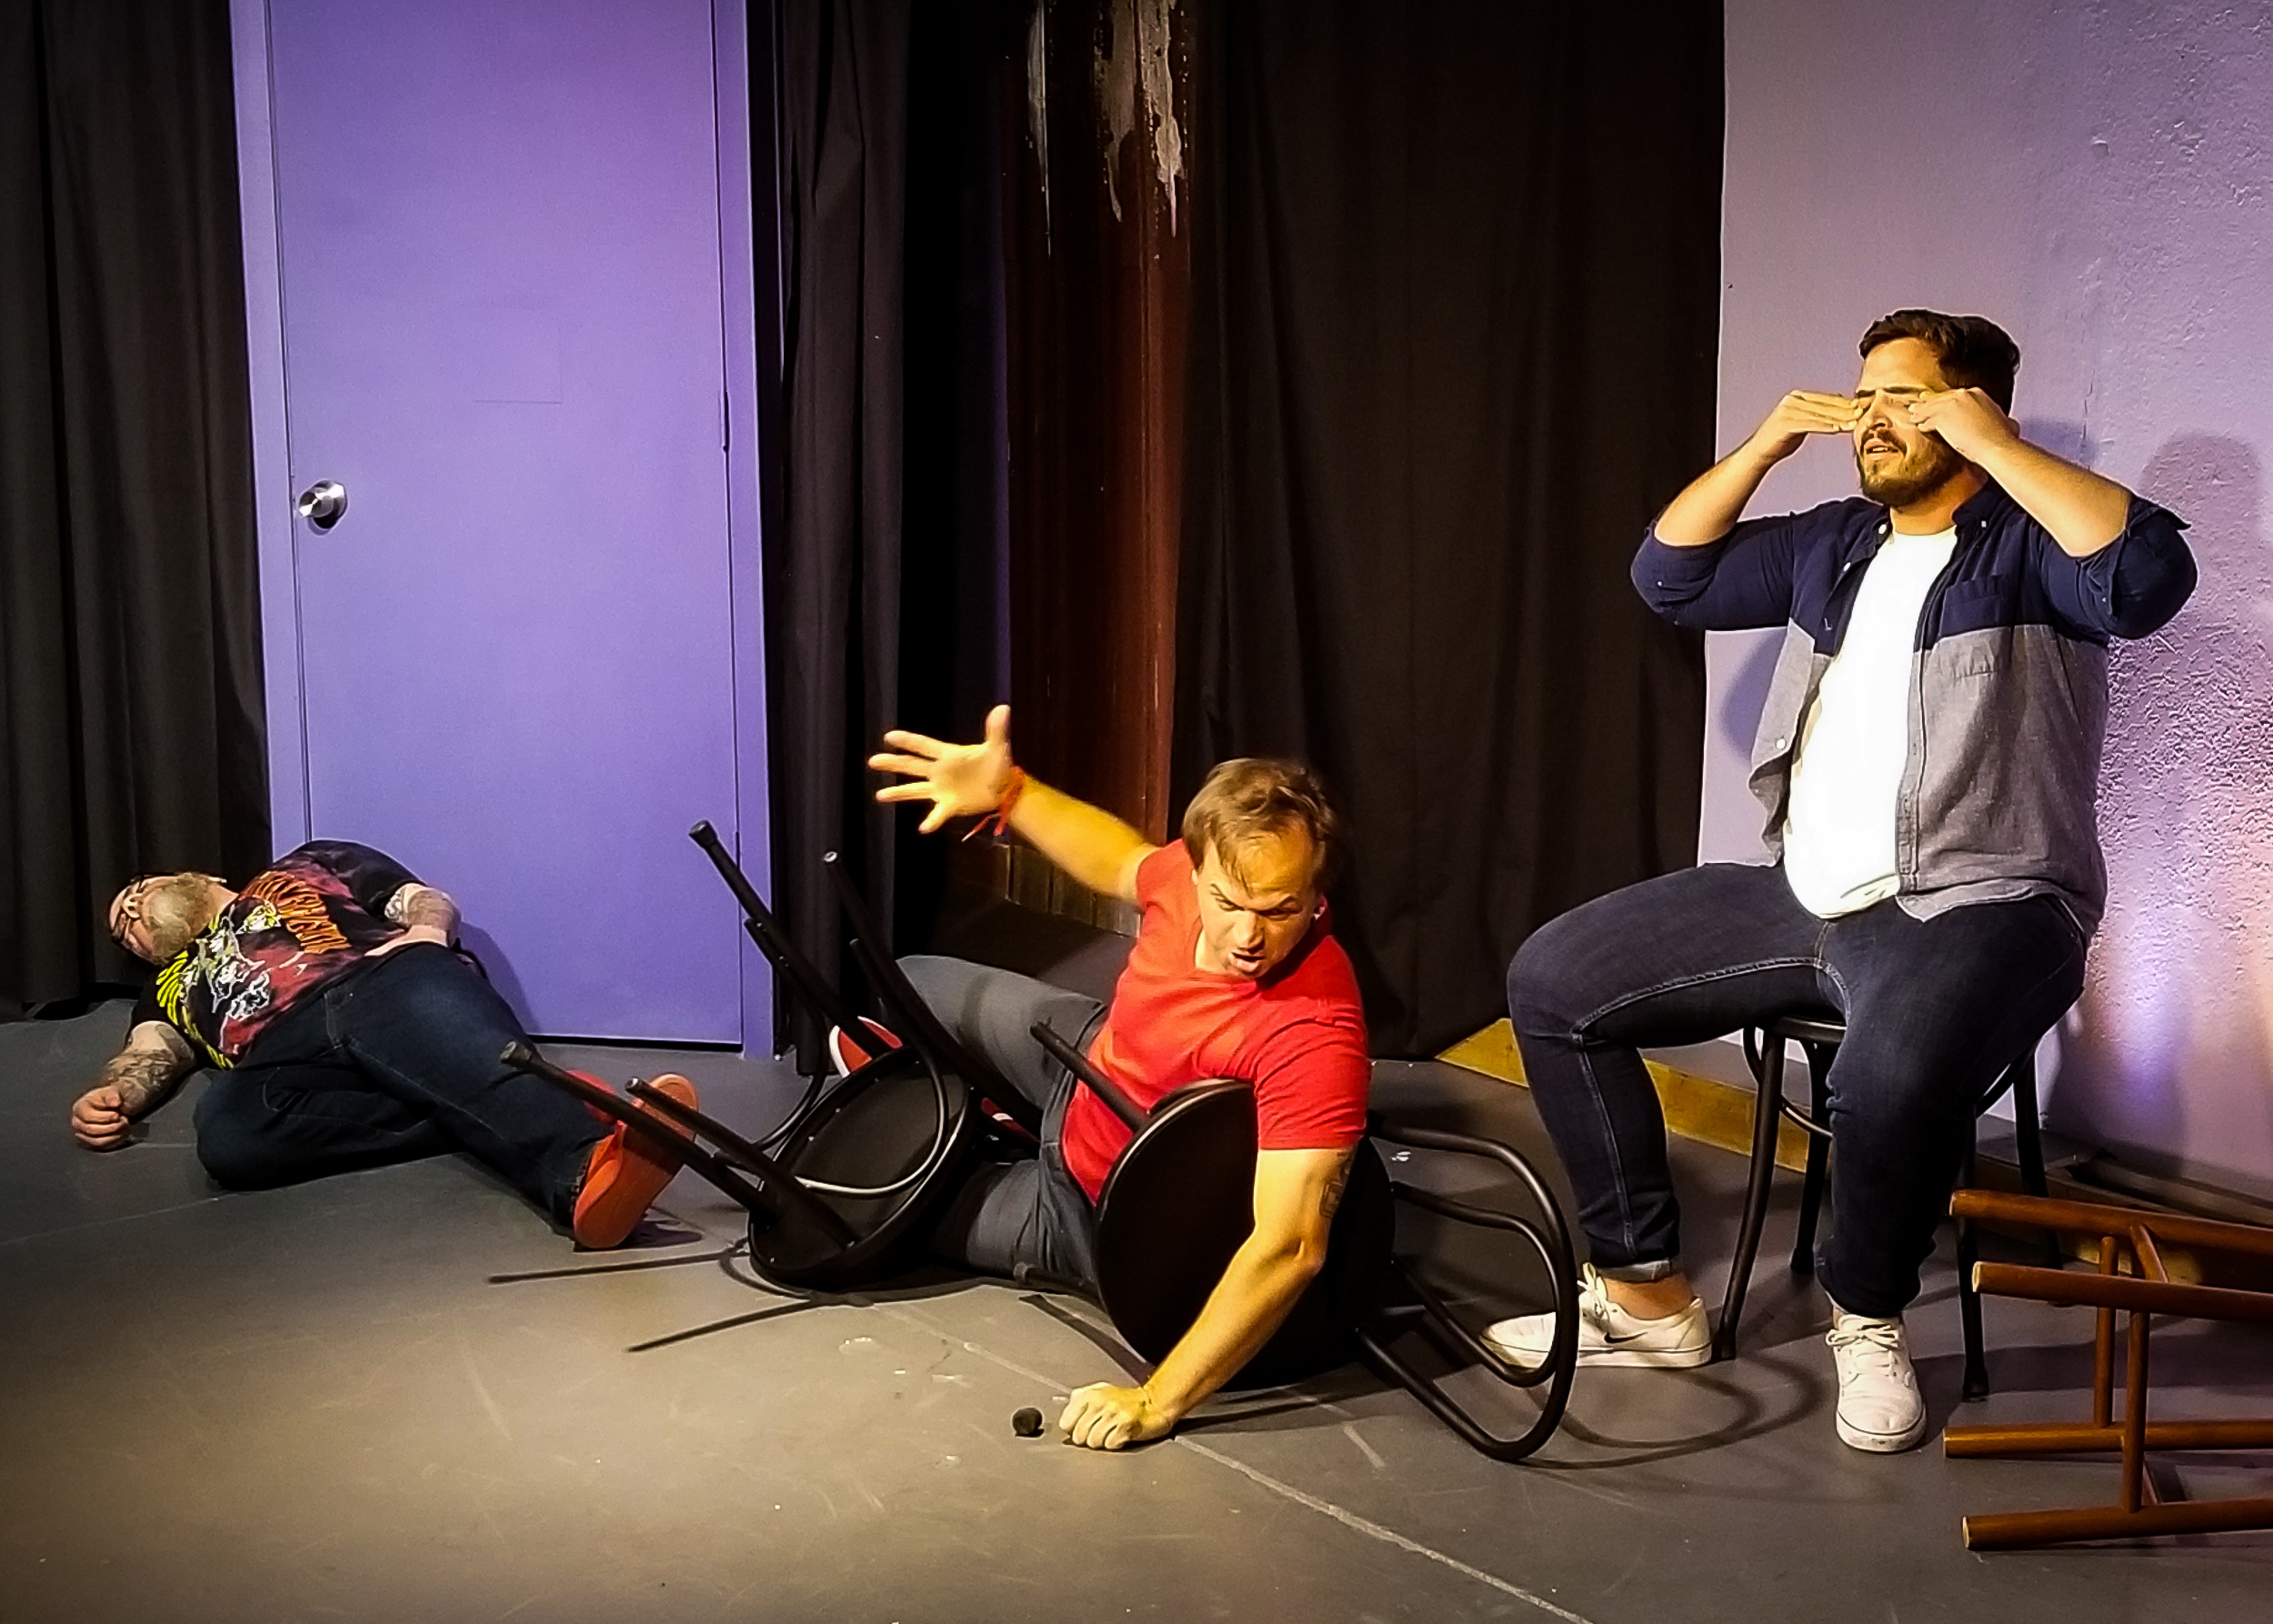 Craig Lawrence as ambien, Chad Zeller as cocaine, Andrew Bekas as LSD, and Michael Shurtz as salvia. You can watch the full scene  here , starting at 39:45.